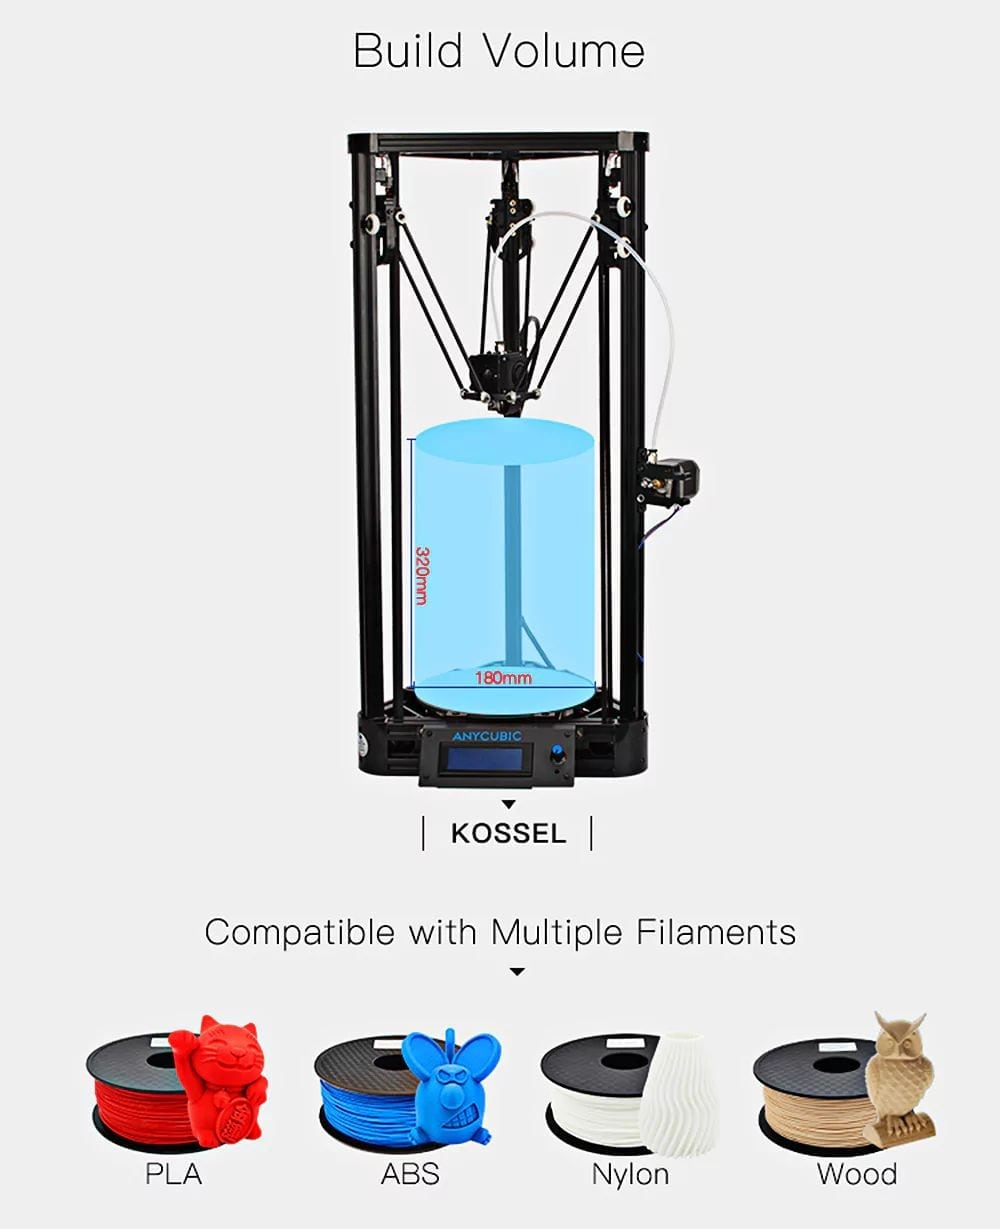 AnyCubic Kossel Features